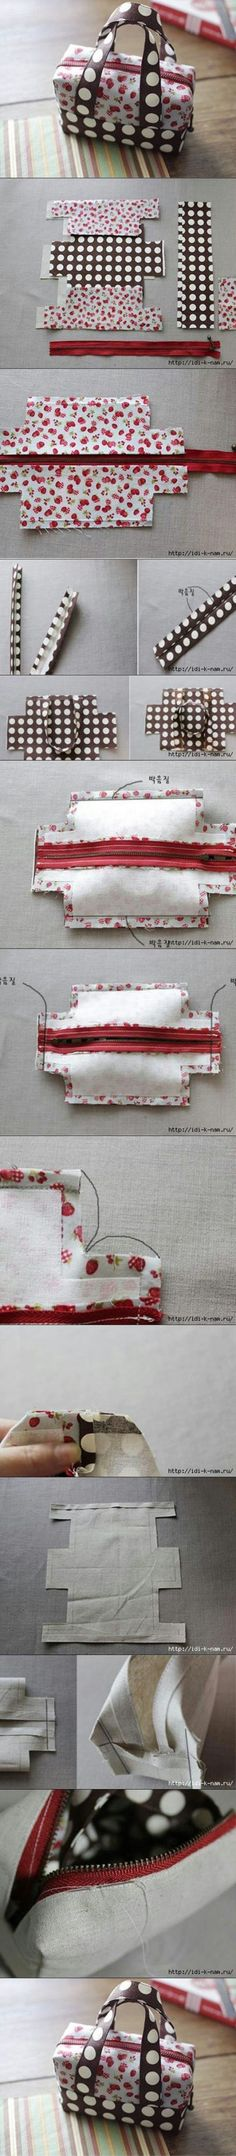 DIY Fabric Tote Handbag, it's not as complex as we imagine.Cute, smart, fancy DIY ideas and projeccts to have some funHere is a tutorial to make a lovely mini fabric tote. This mini tote is perfect to keep such small itemsThe Perfect DIY projects, Fabric Crafts, Sewing Crafts, Sewing Projects, Purse Patterns, Sewing Patterns, Sewing Hacks, Sewing Tutorials, Sewing Kit, Free Sewing